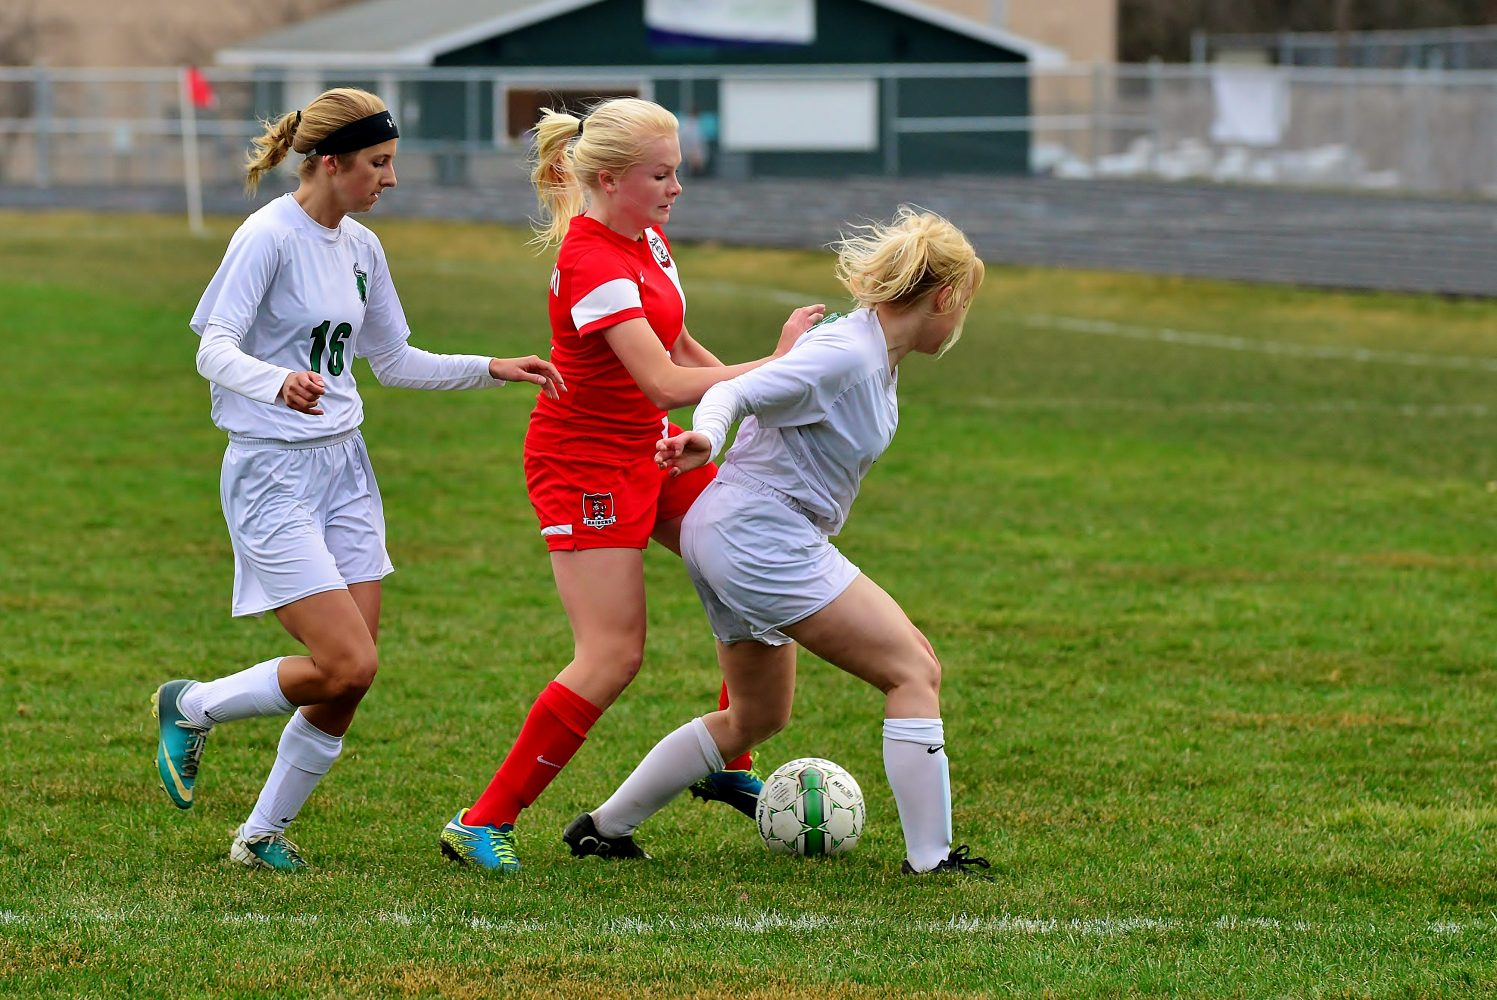 Alayna Franson and Kylie Preul fight to strip the ball from a Pulaski player.